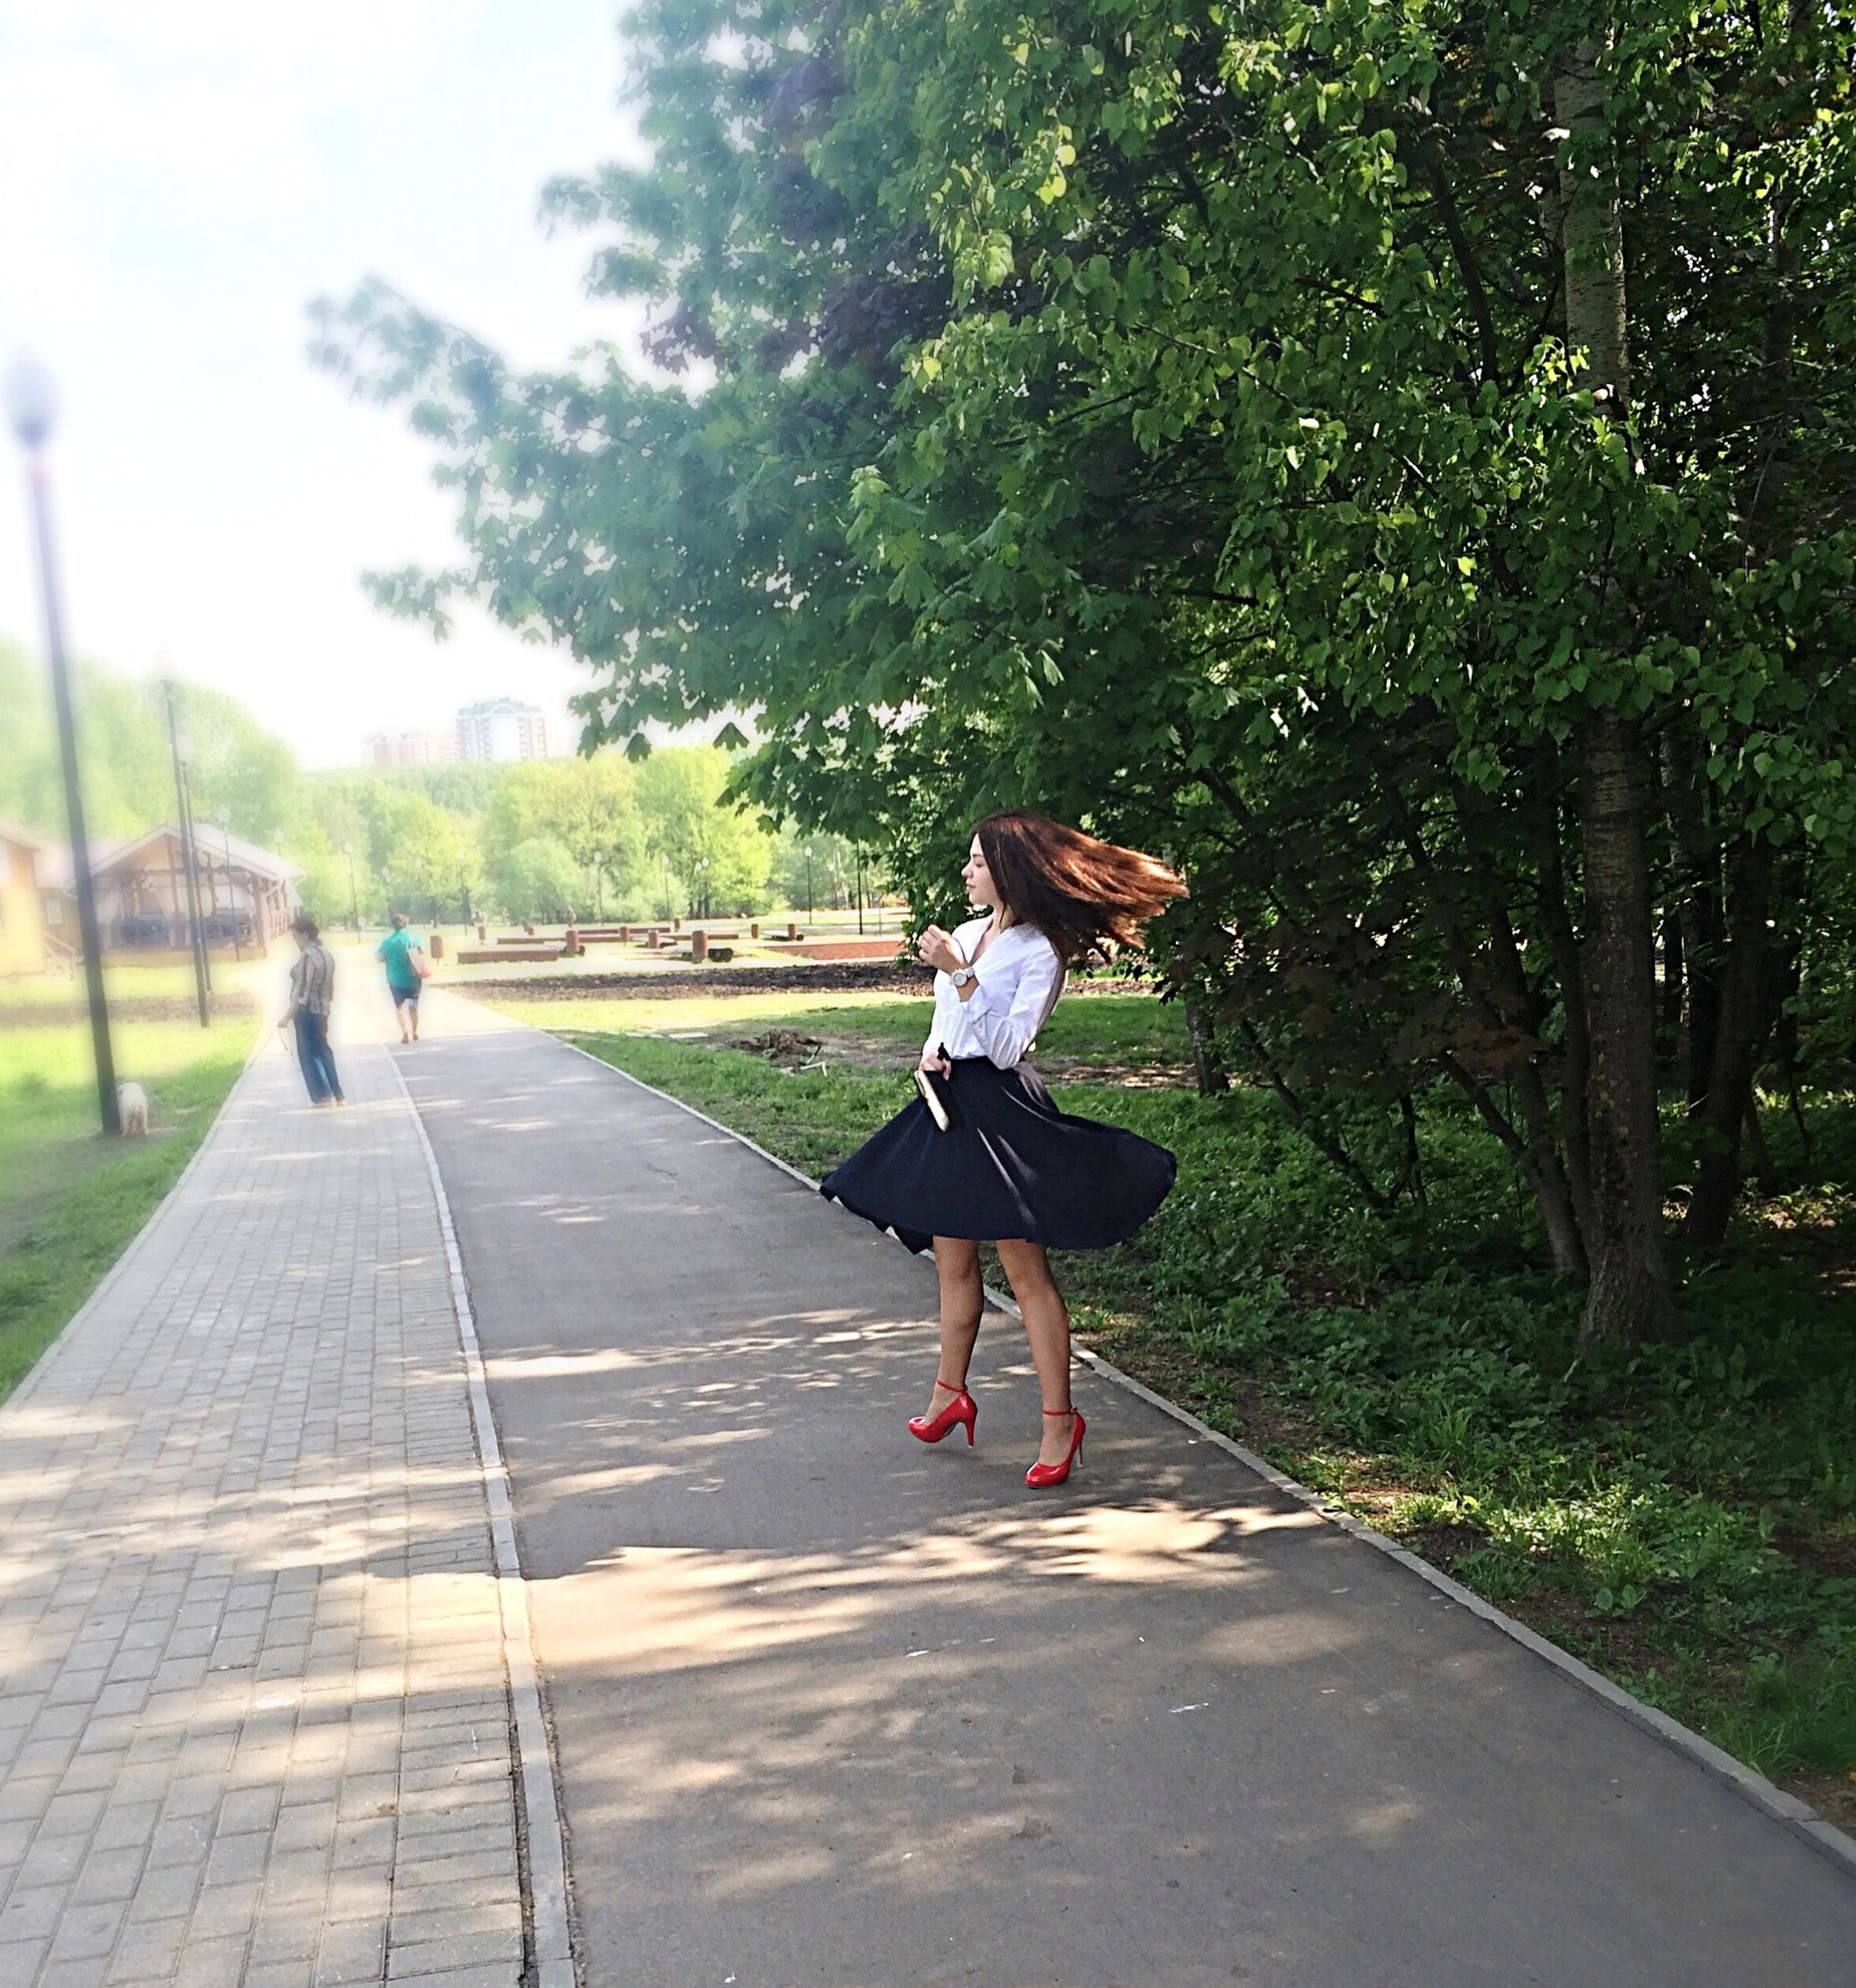 full length, tree, lifestyles, leisure activity, road, the way forward, casual clothing, transportation, mid-air, rear view, walking, street, front view, skateboard, day, jumping, young adult, motion